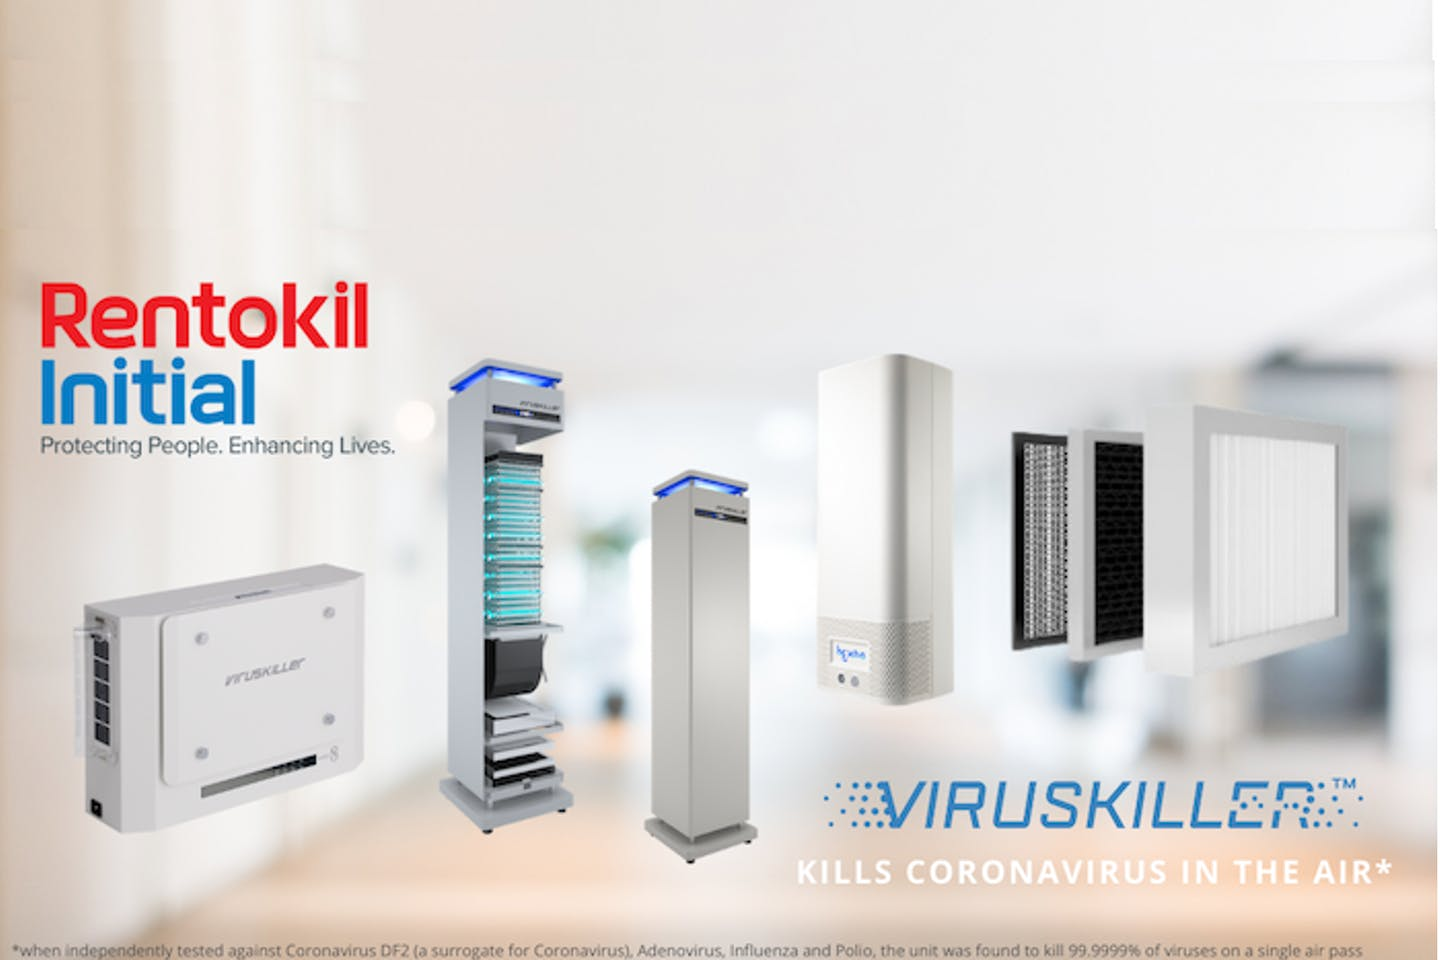 Rentokil Initial launches VIRUSKILLER™ air decontamination for complete indoor air safety